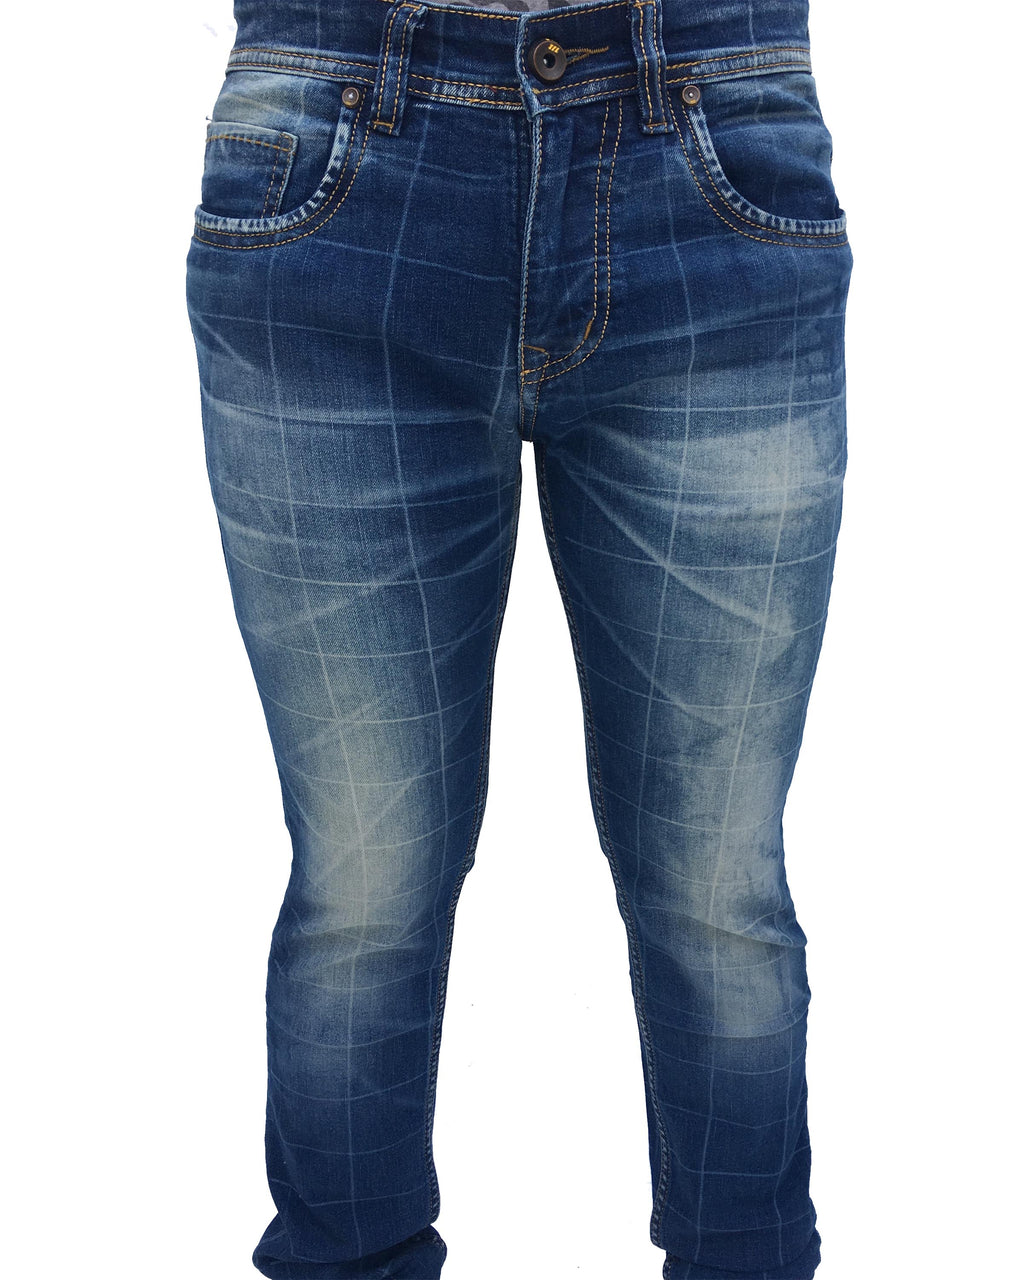 SQUARE -Tapered Fit Denim Jeans - THE UNIQUE FIT